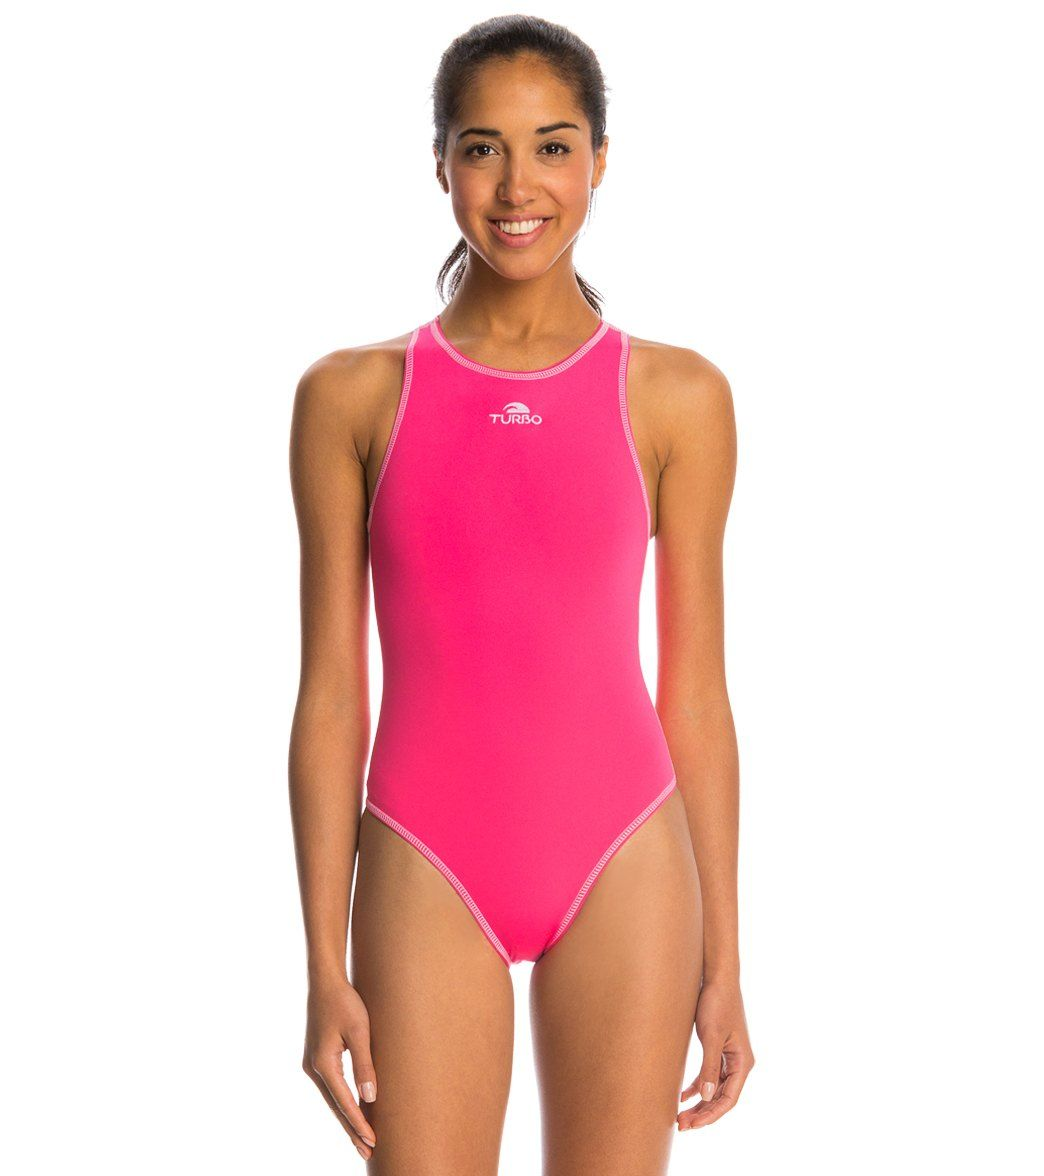 Turbo Women S Comfort Water Polo Suit At Swimoutlet Com Free Shipping Water Polo Suits Swimwear Clearance Water Polo